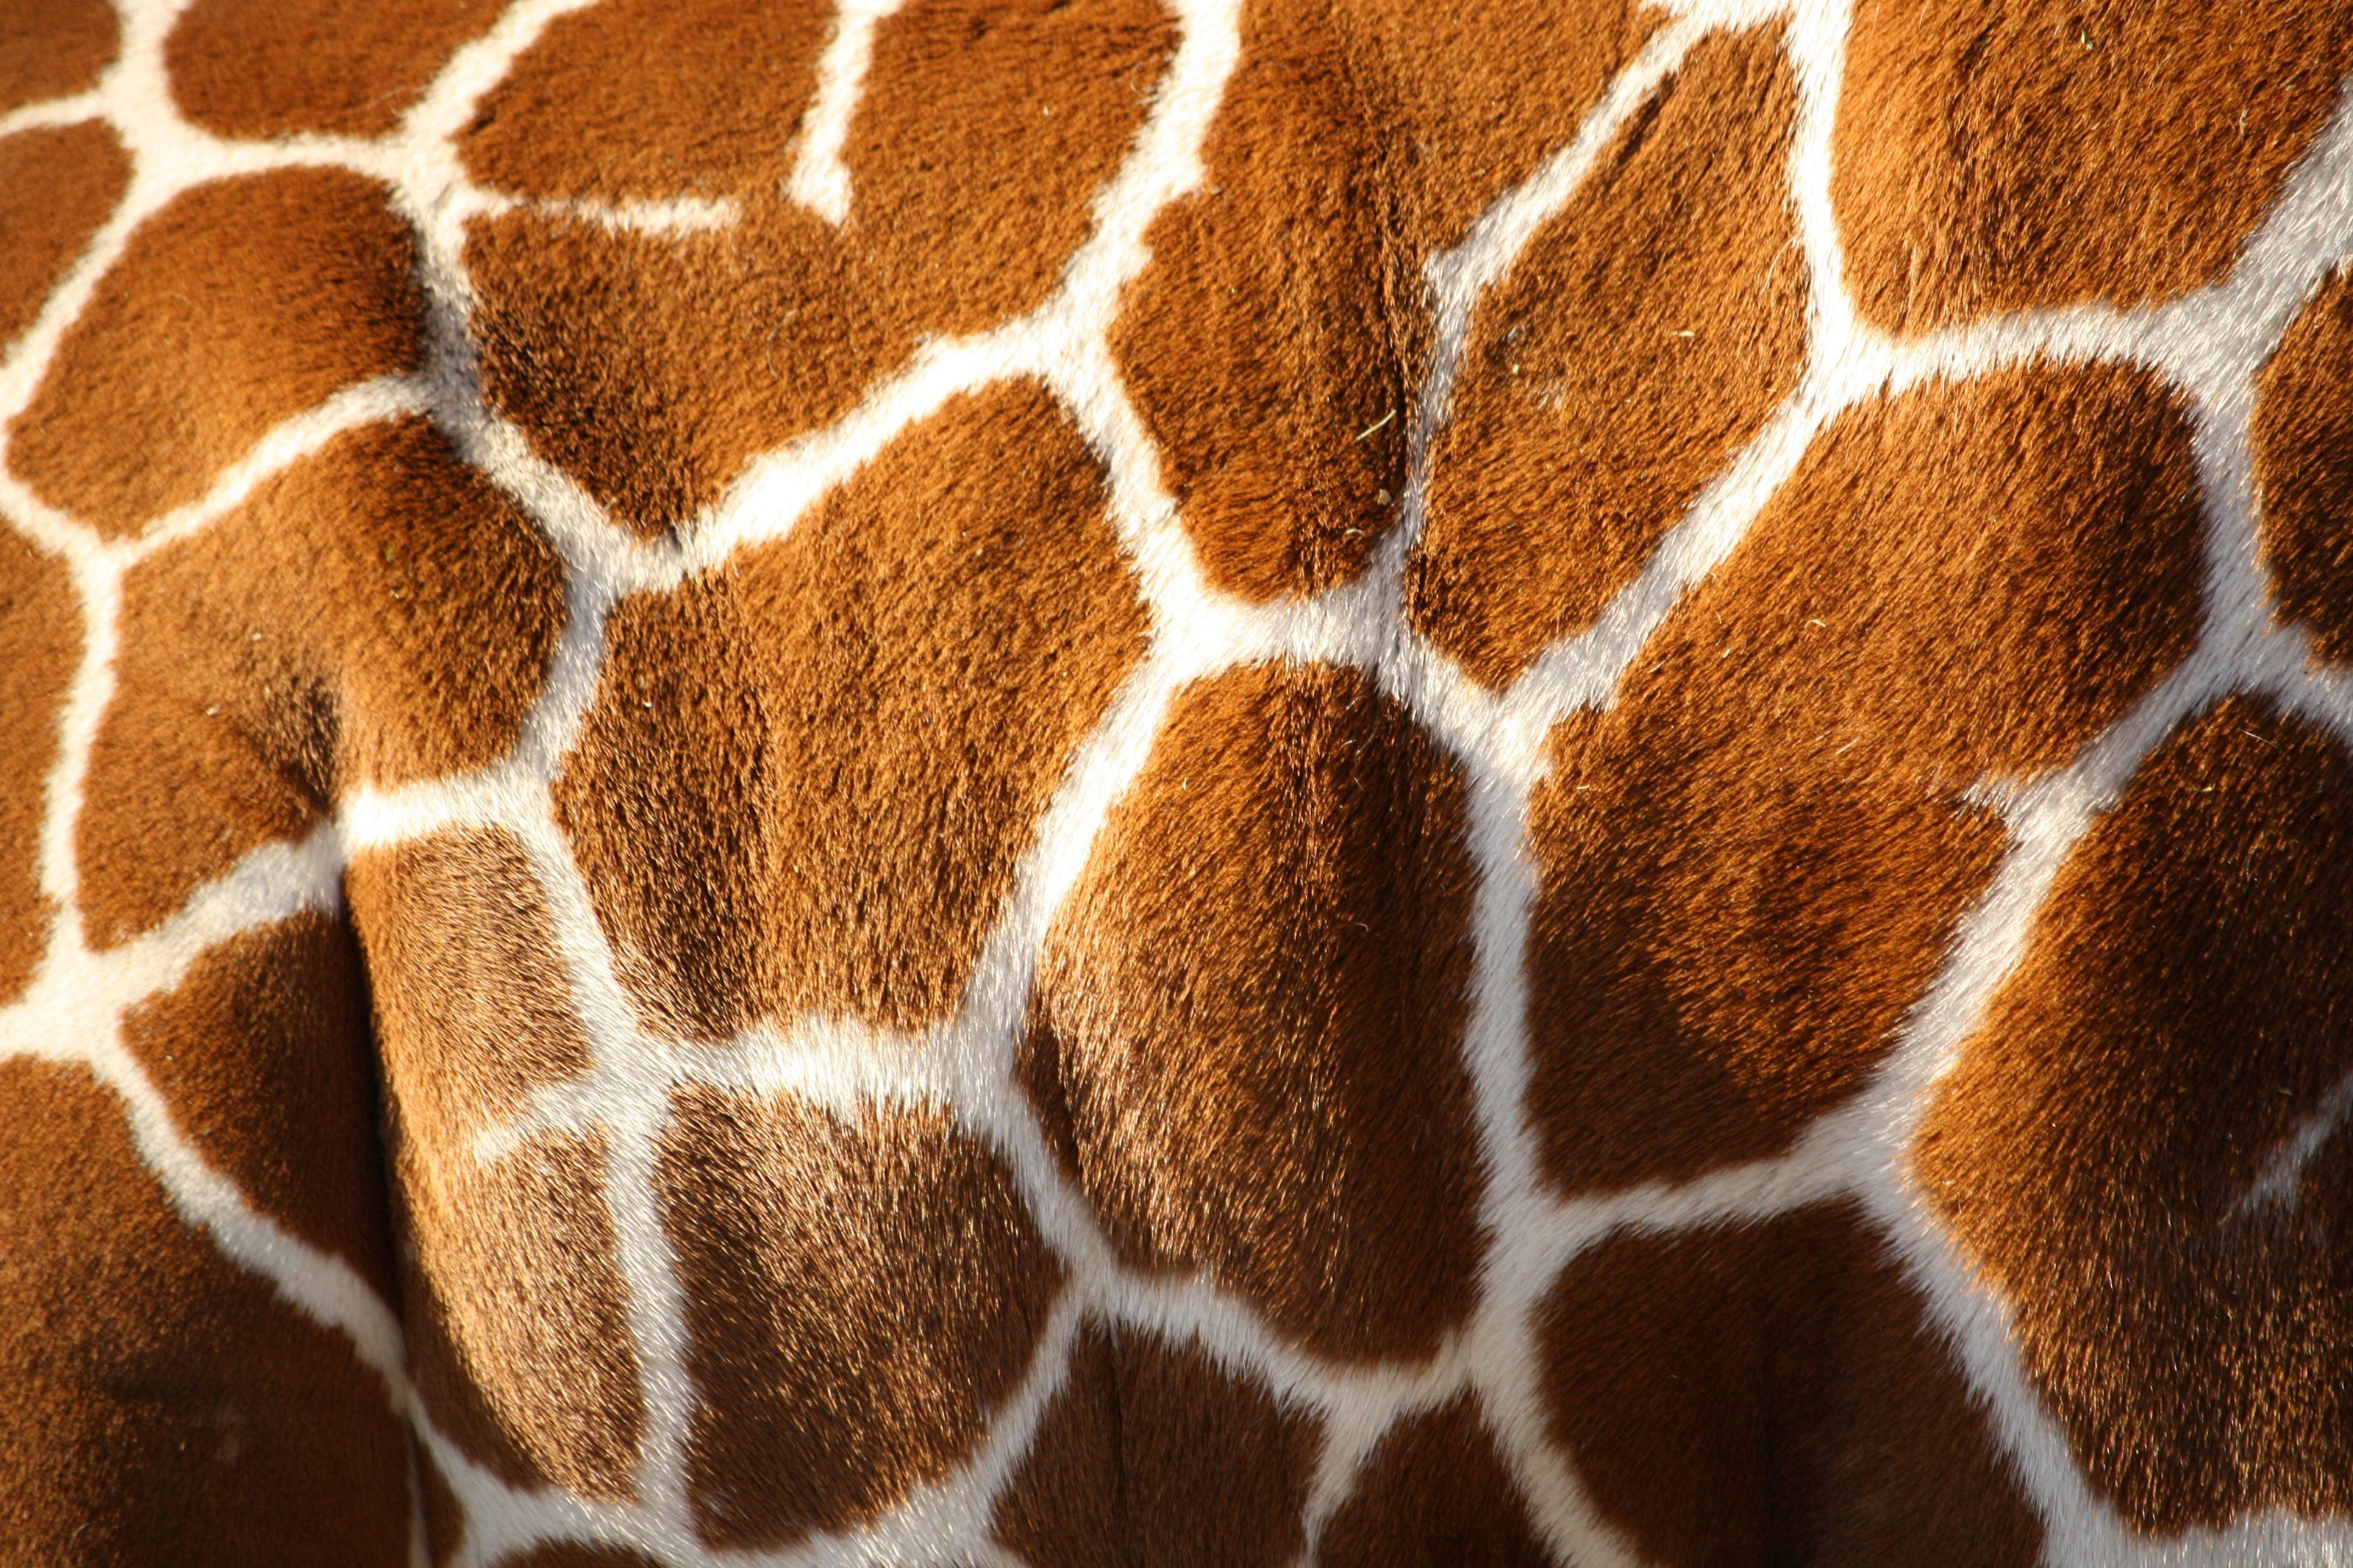 Giraffe Print To Download Wallpapers Just Right Click On